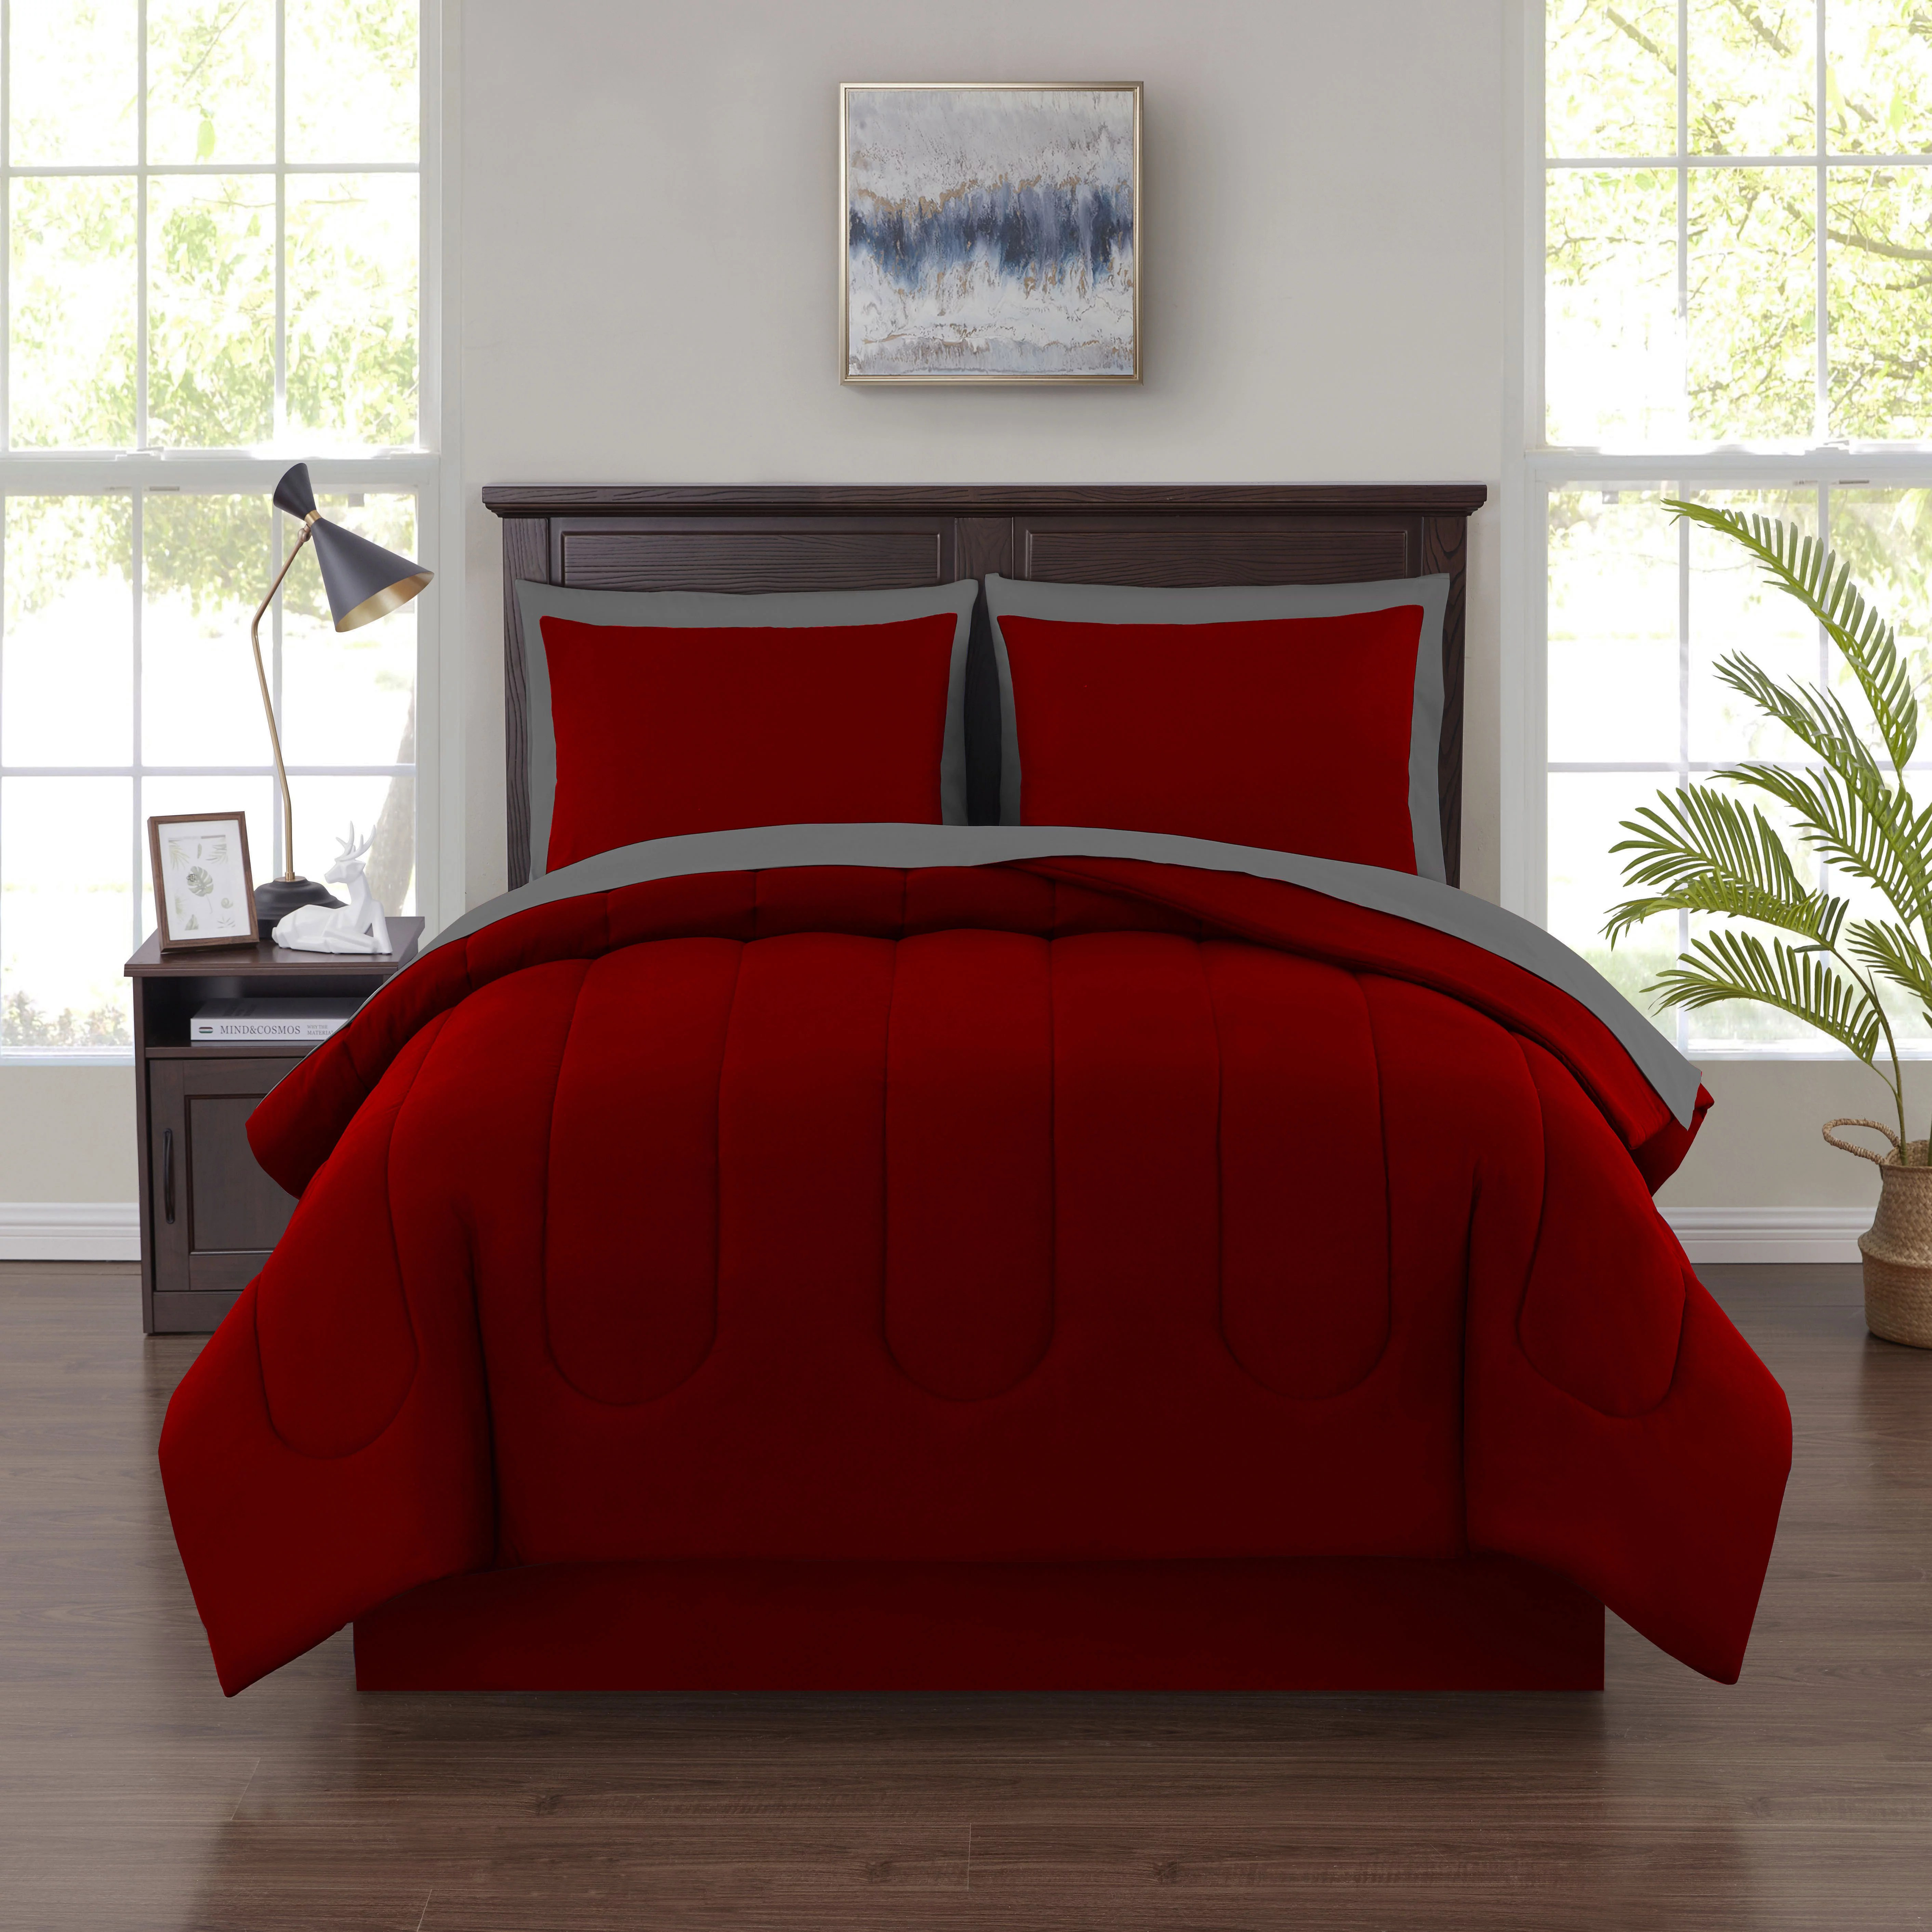 mainstays 6 piece solid bed in a bag bedding comforter set twin red